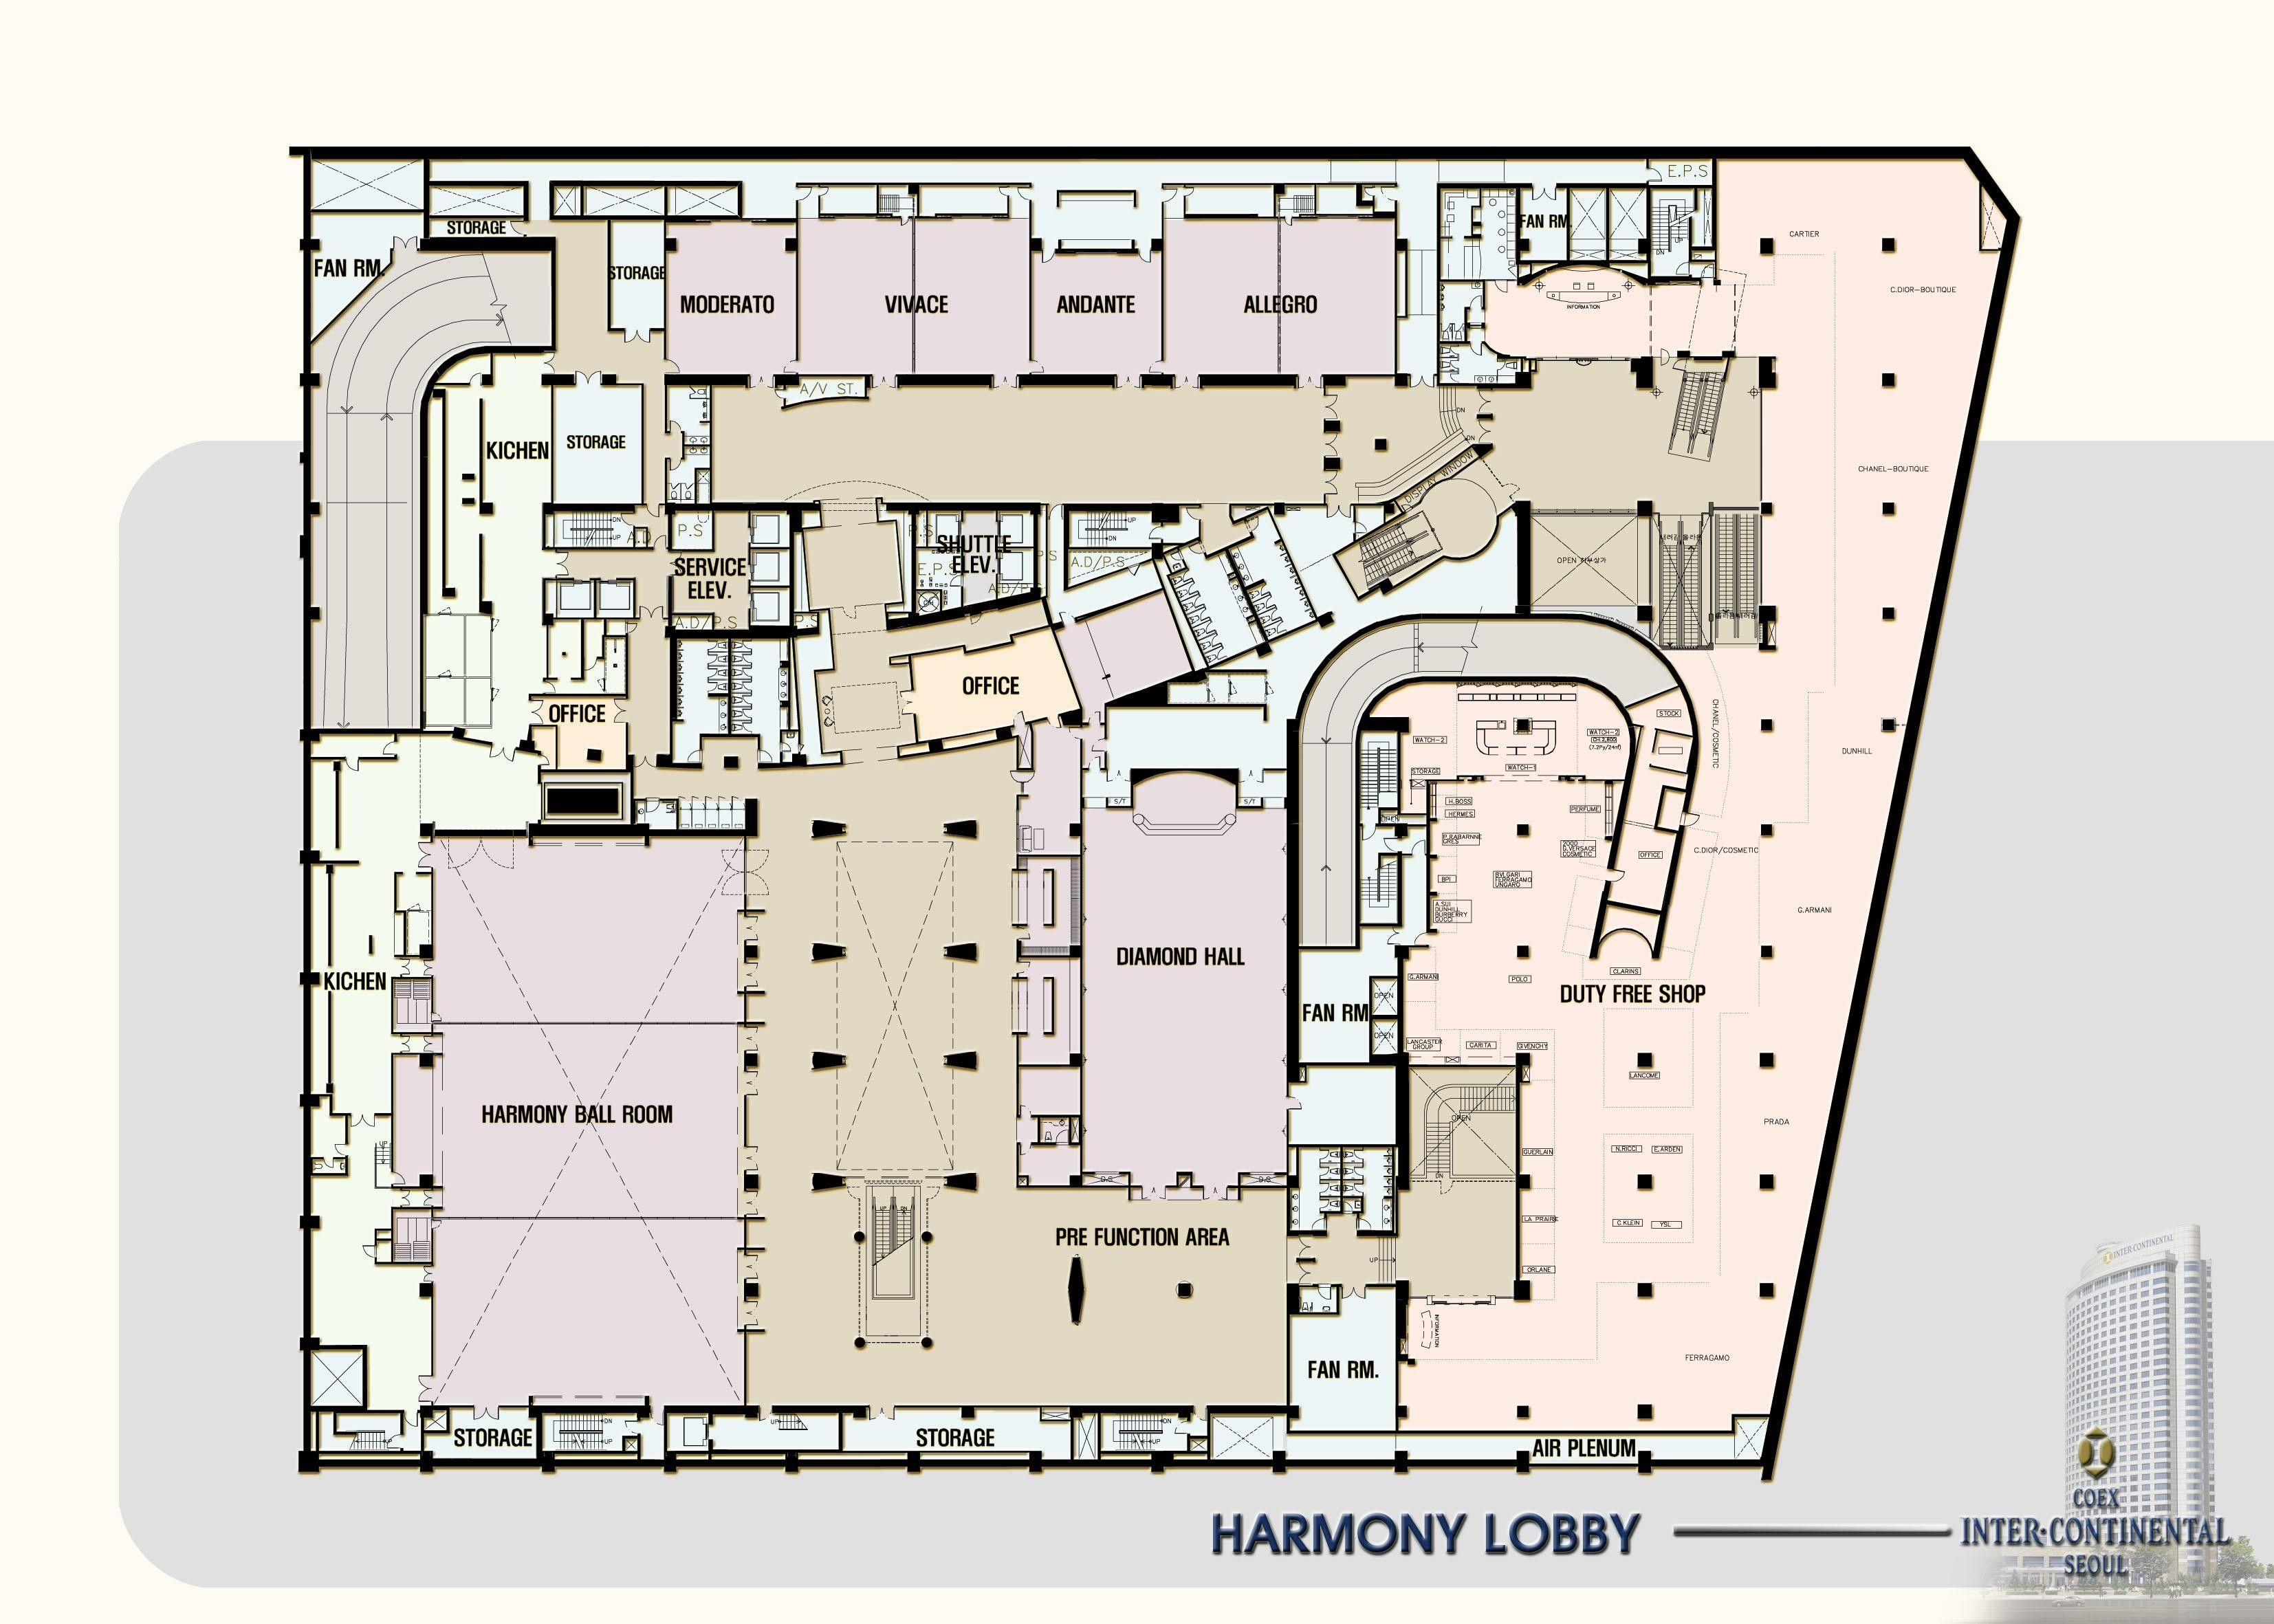 Hotel Lobby Floor Plan Google Search Hotel Design Program Pinterest Lobbies And Hotel